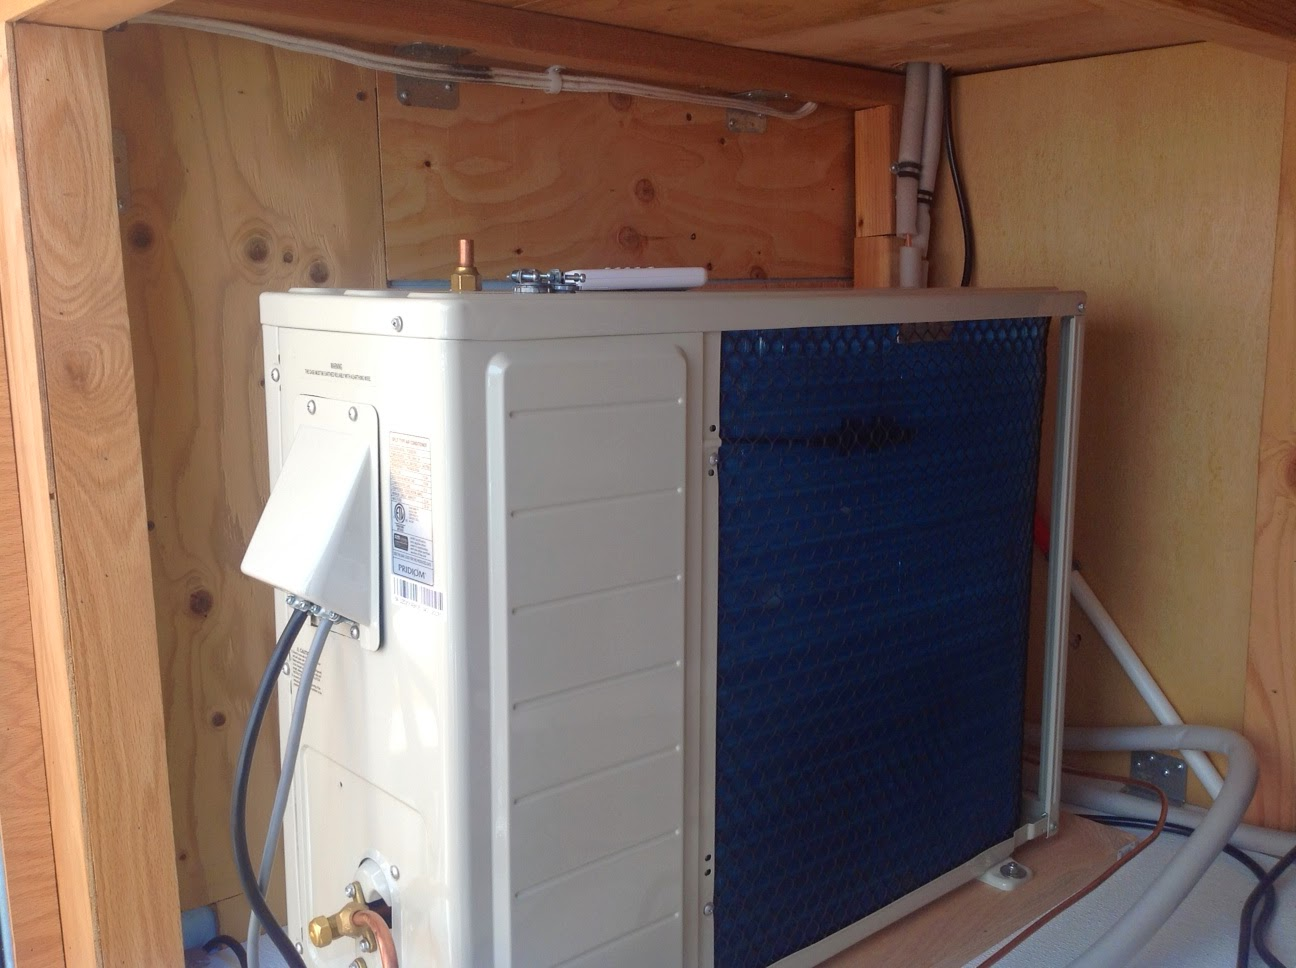 2013 Carmate 100 Solar Heated And Cooled Over The Top Cargo Trailer 100 Rv Solar